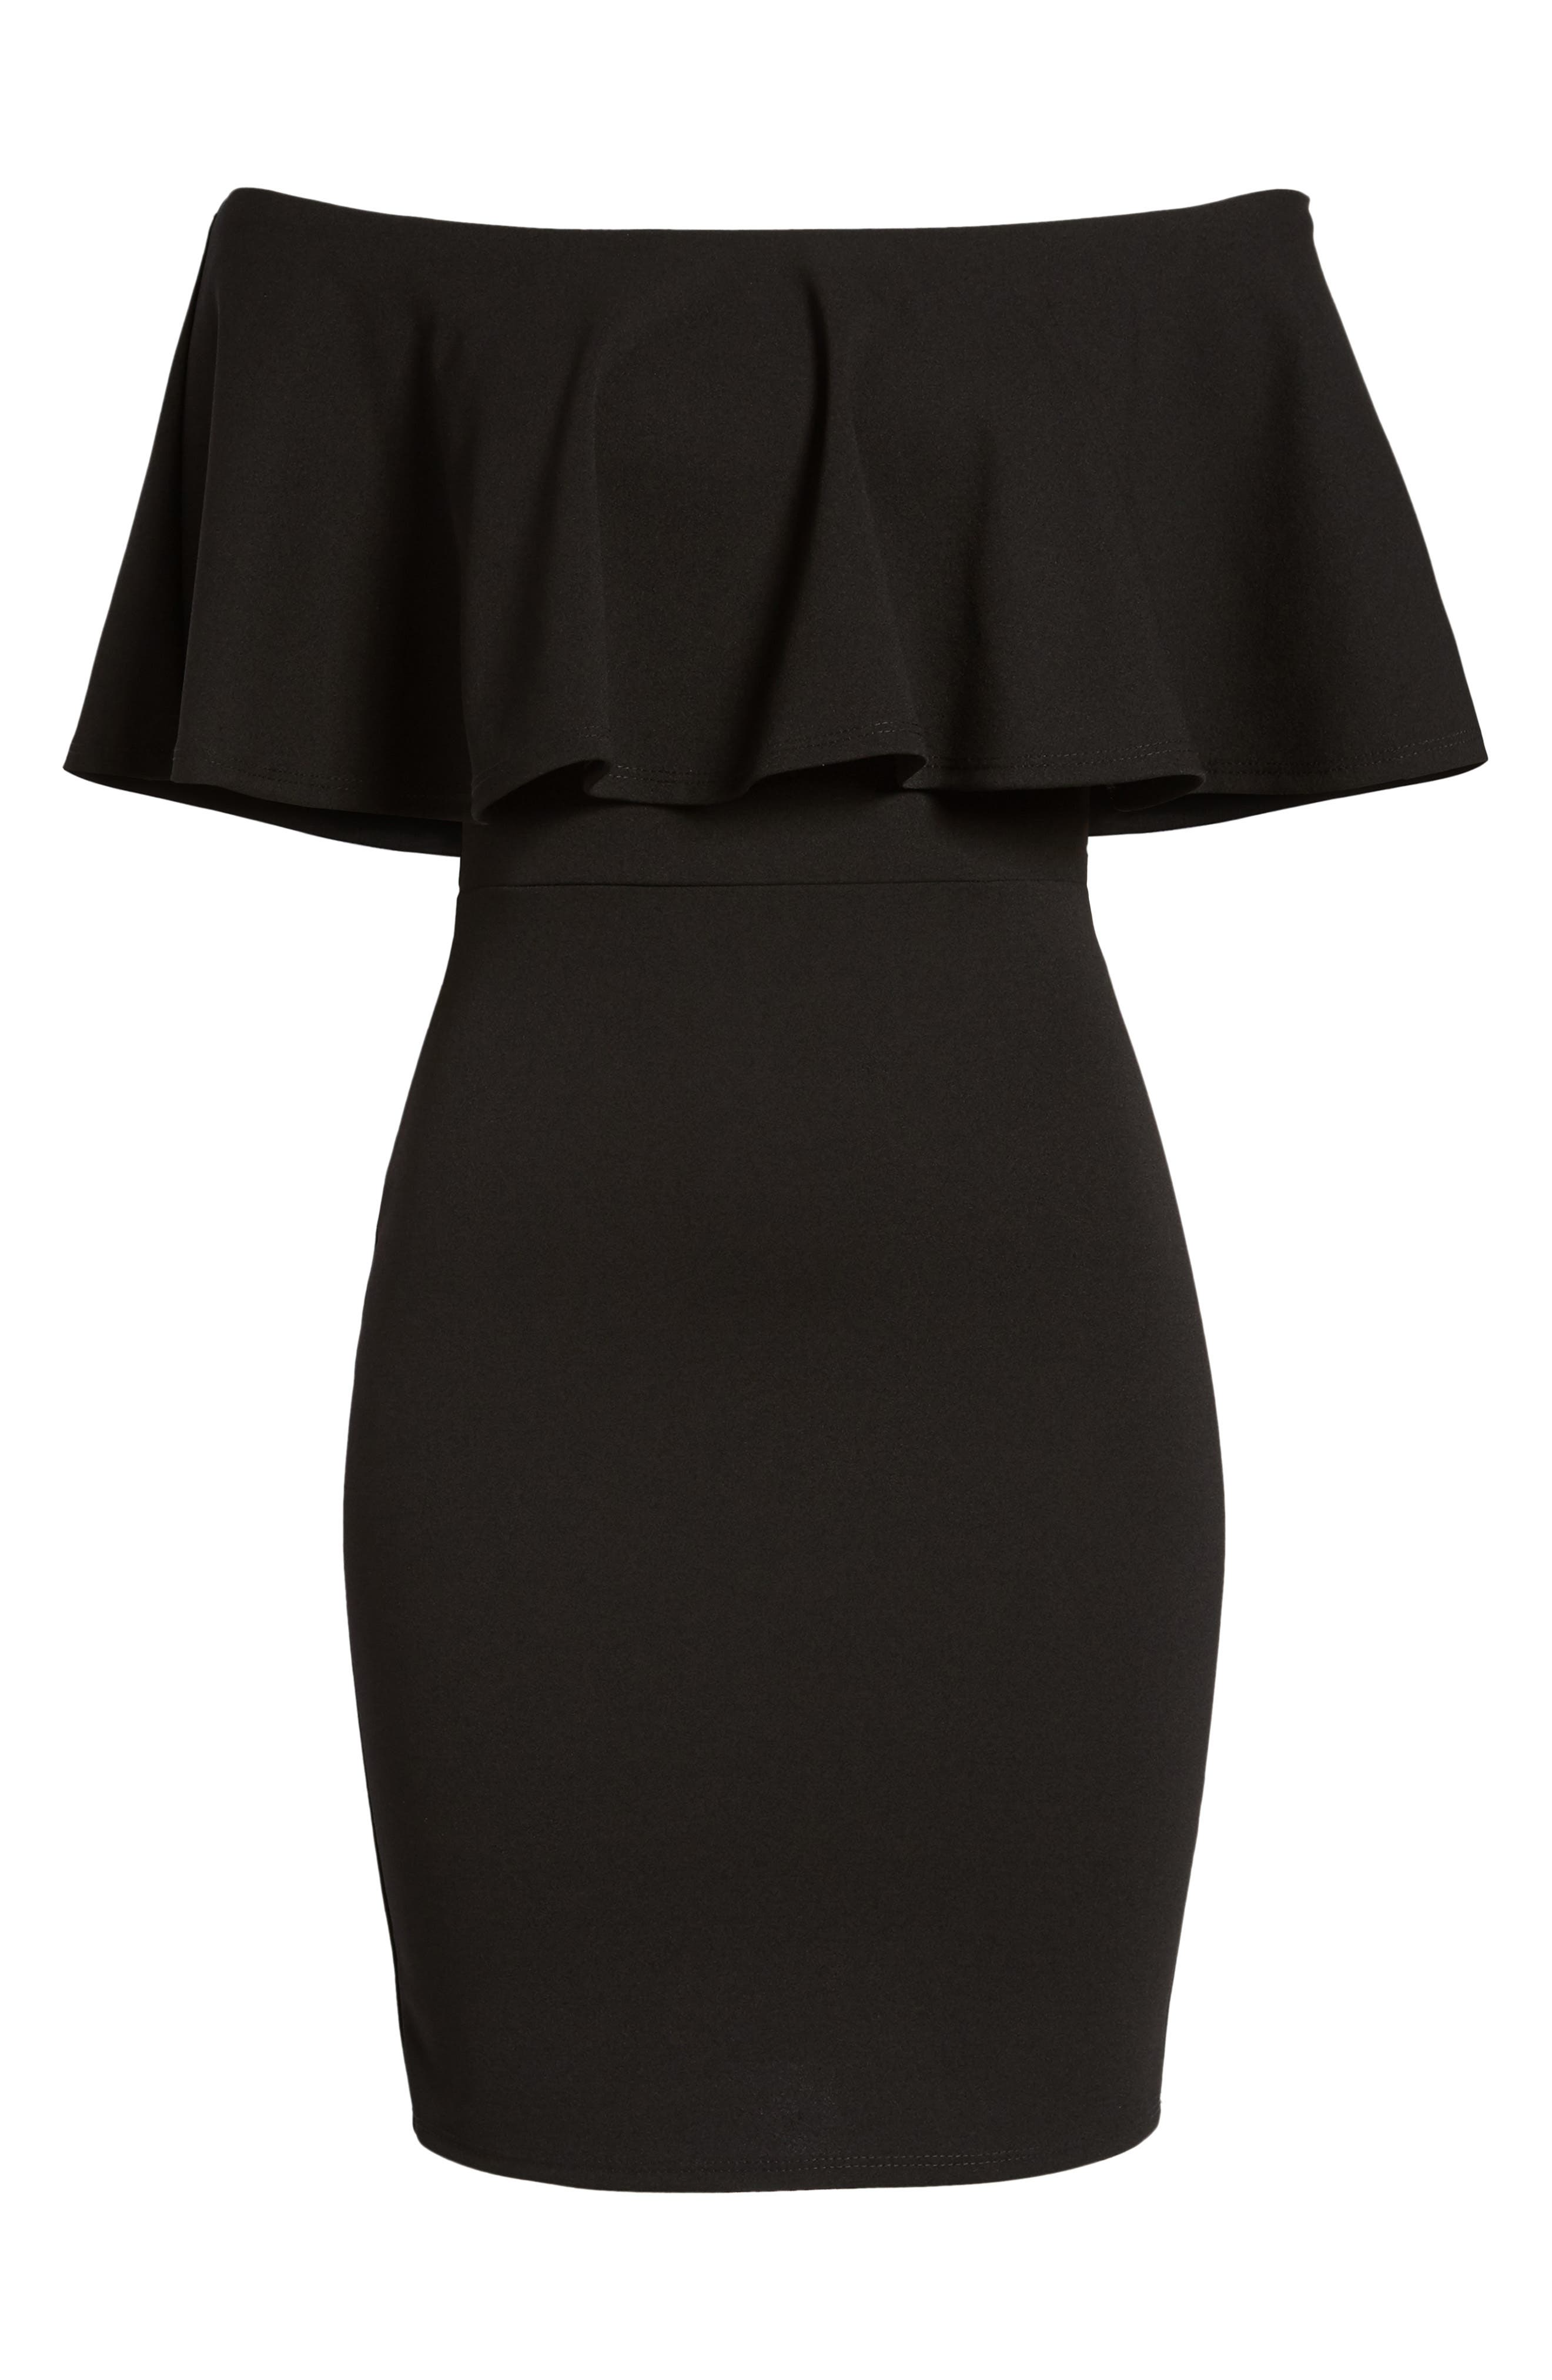 Ruffle Off the Shoulder Body-Con Dress,                             Alternate thumbnail 7, color,                             001